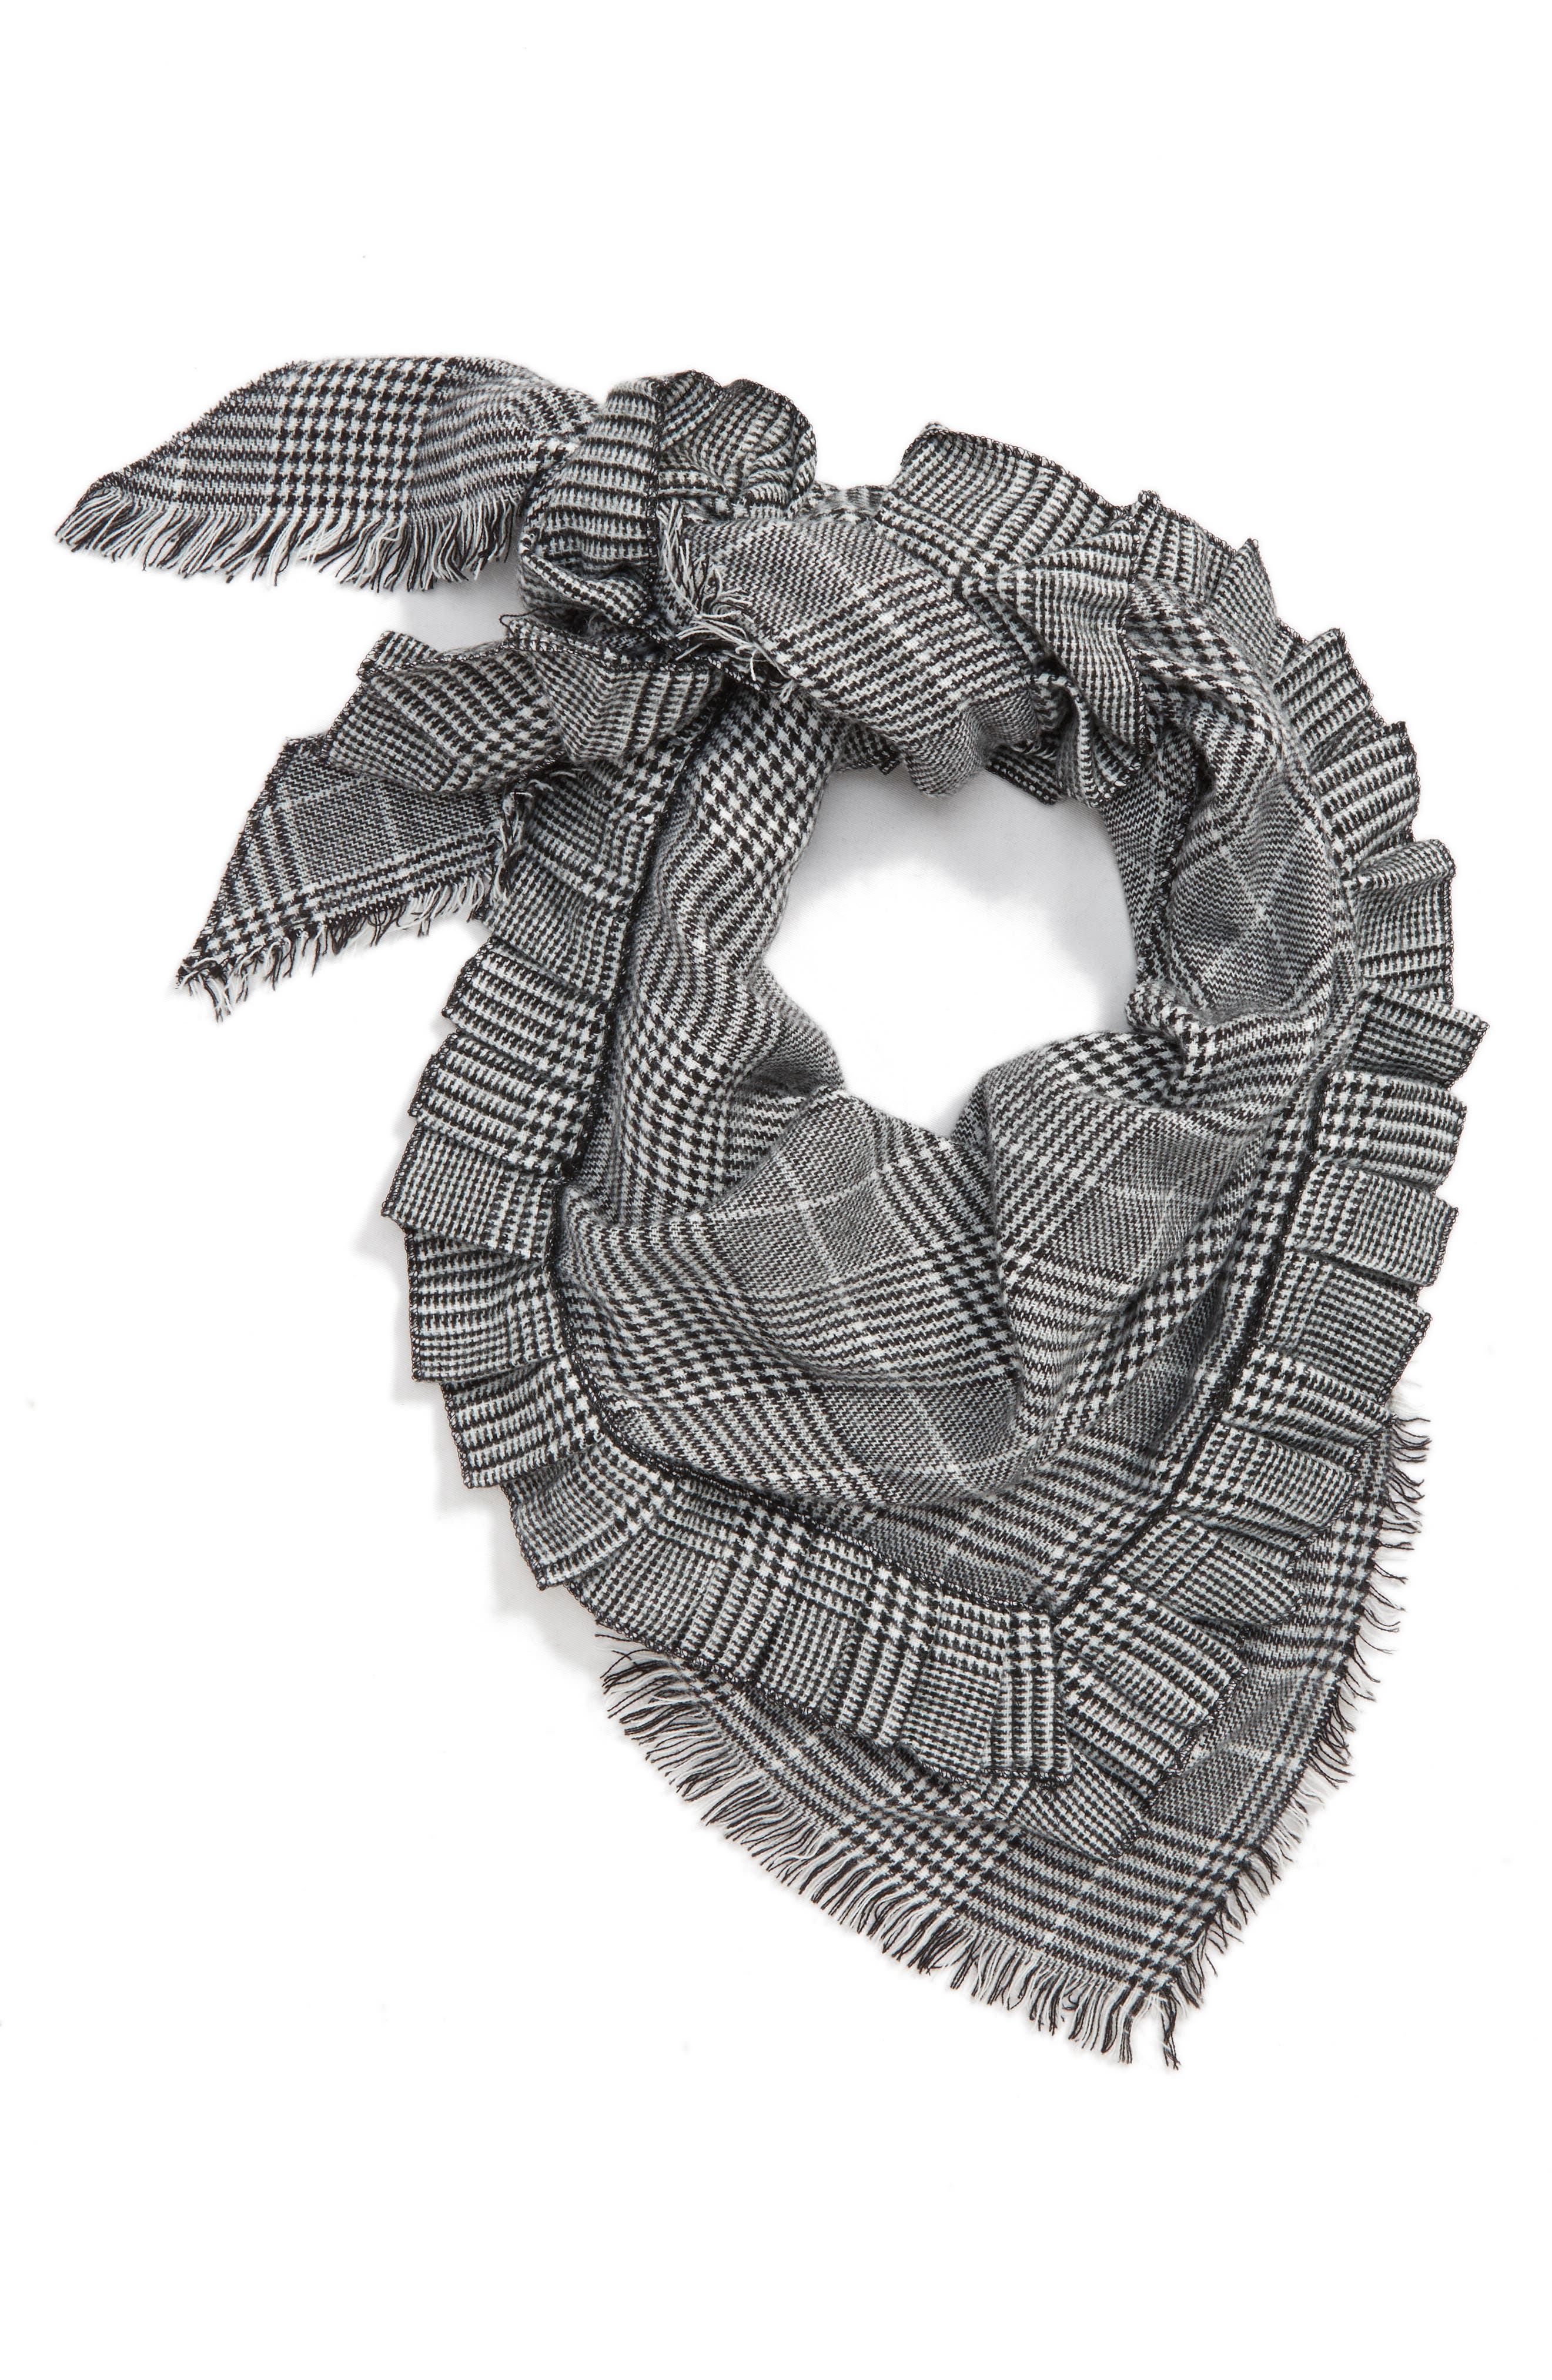 Ruffle Plaid Triangle Scarf,                             Main thumbnail 1, color,                             001